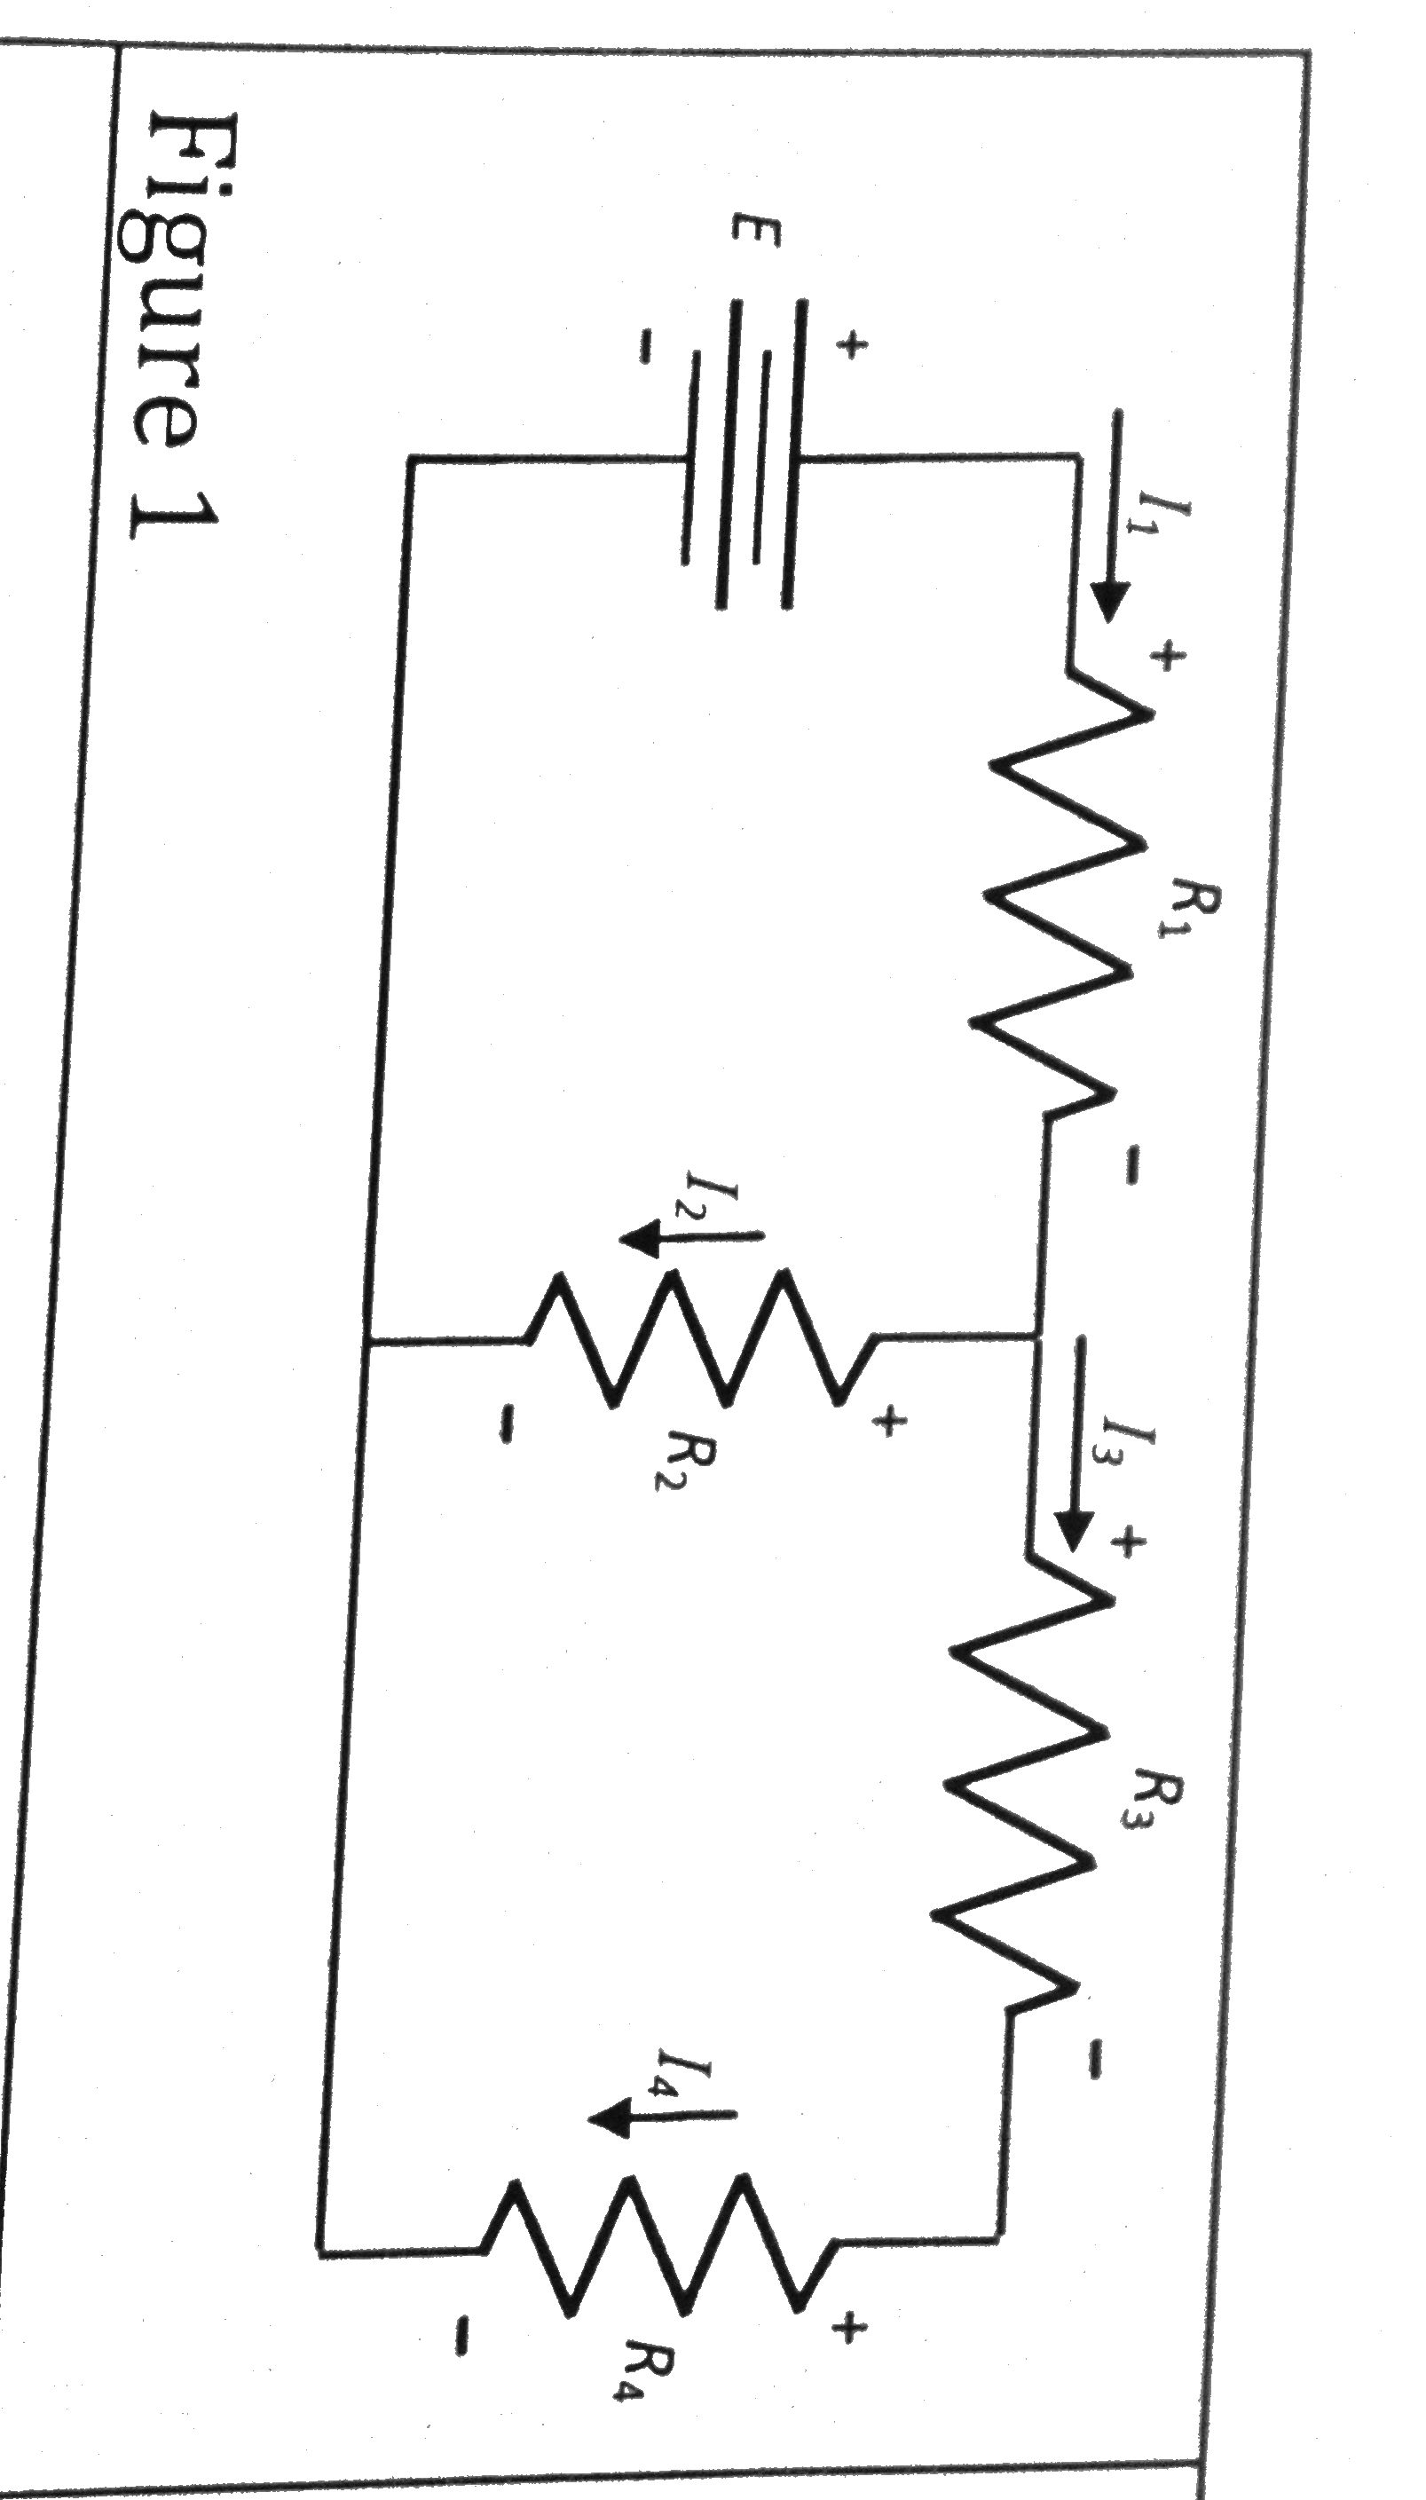 In figure 1, R1 = R2 = 2 Ohms and R3 = R4 = 1 Ohm.